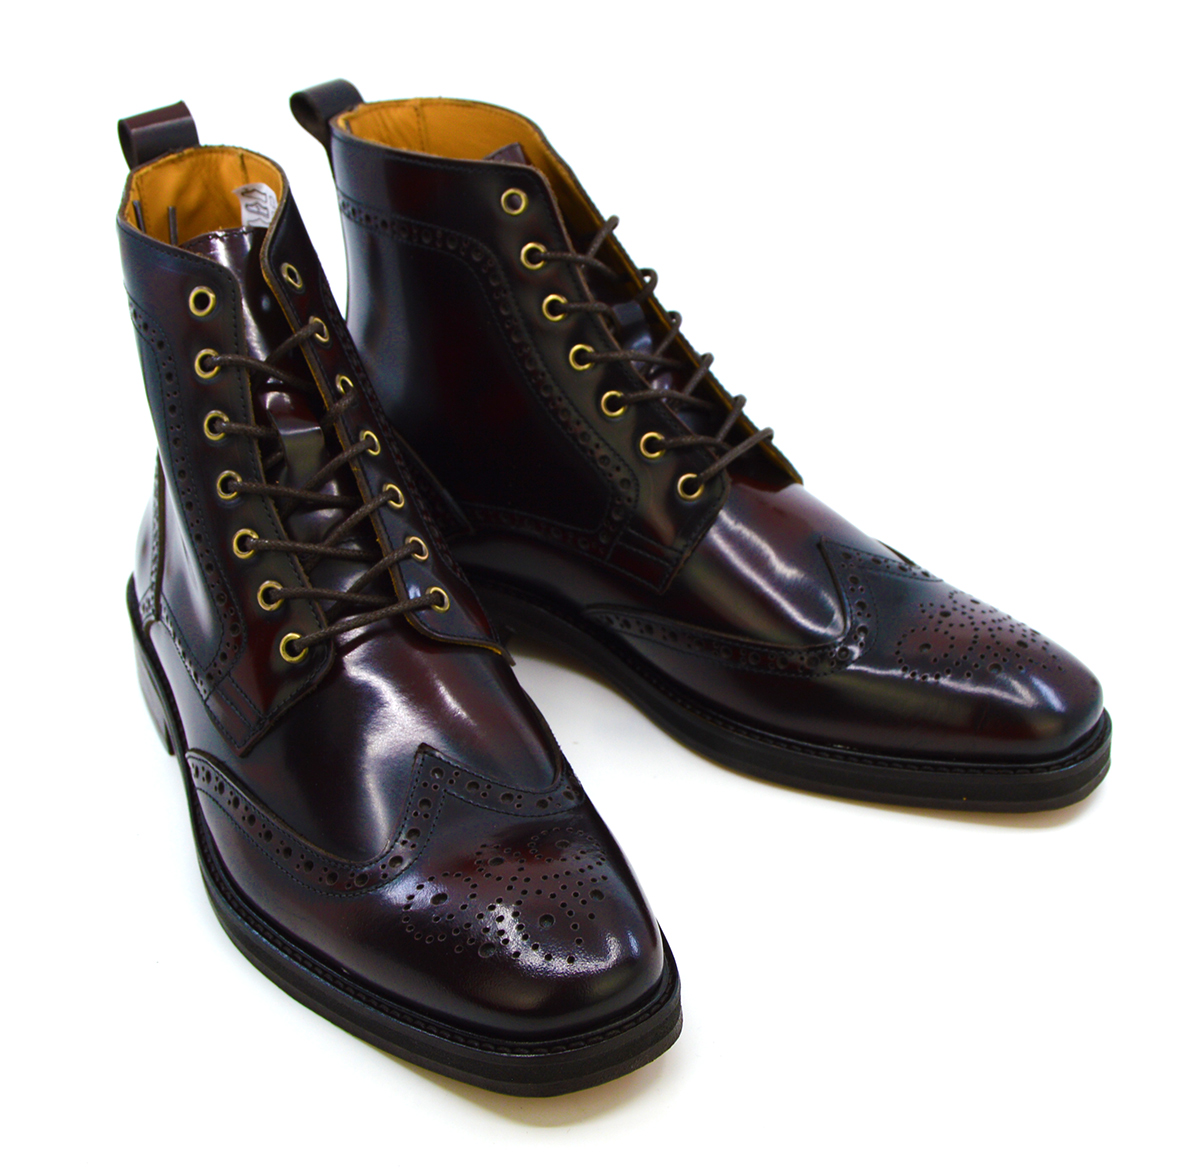 The Shelby V2 New Thicker Soles Oxblood Brogue Boots Peaky Blinders Inspired Mod Shoes